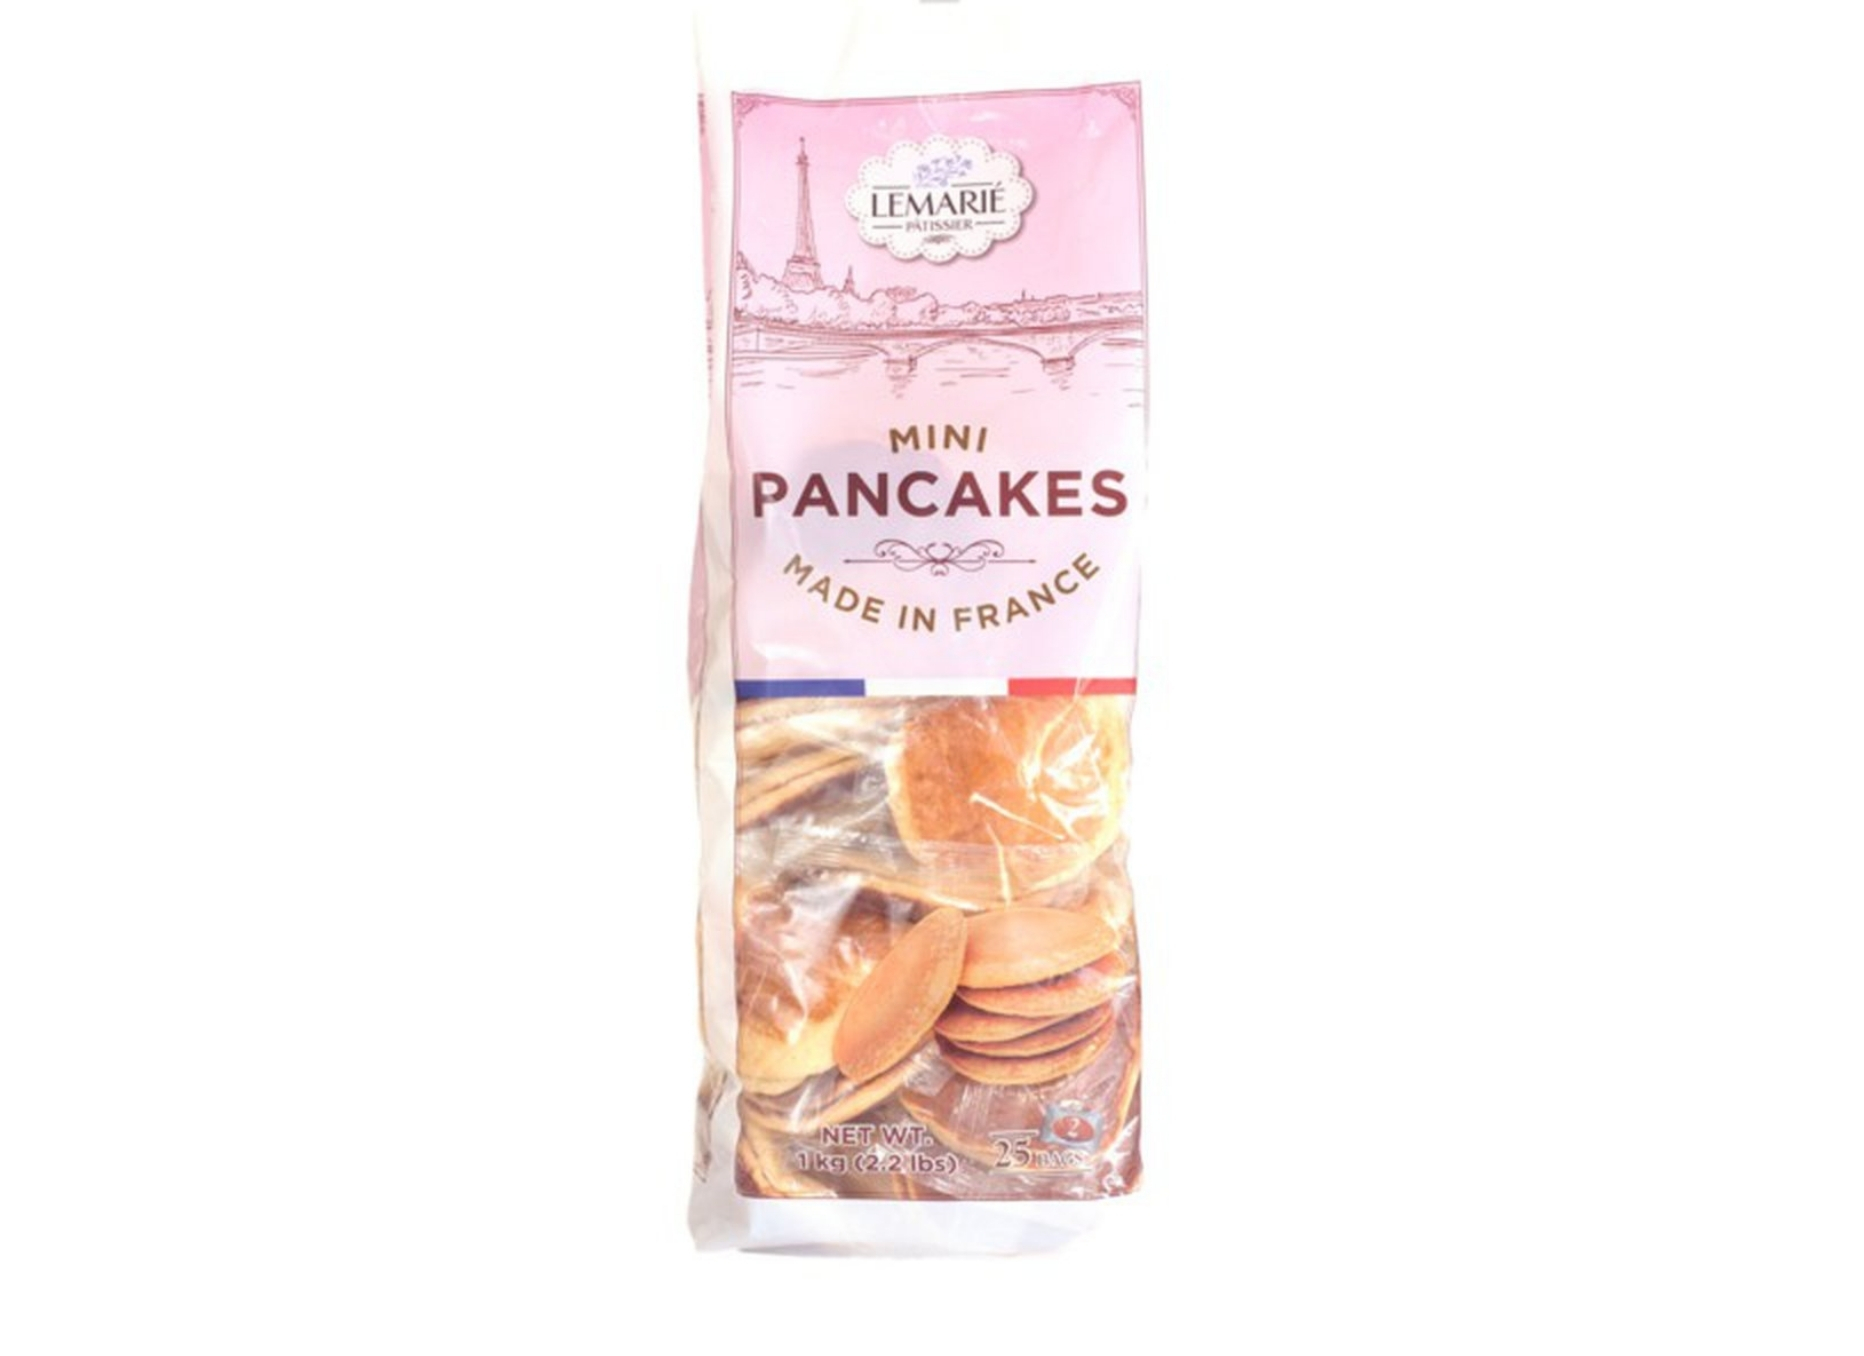 Packaged Pancakes